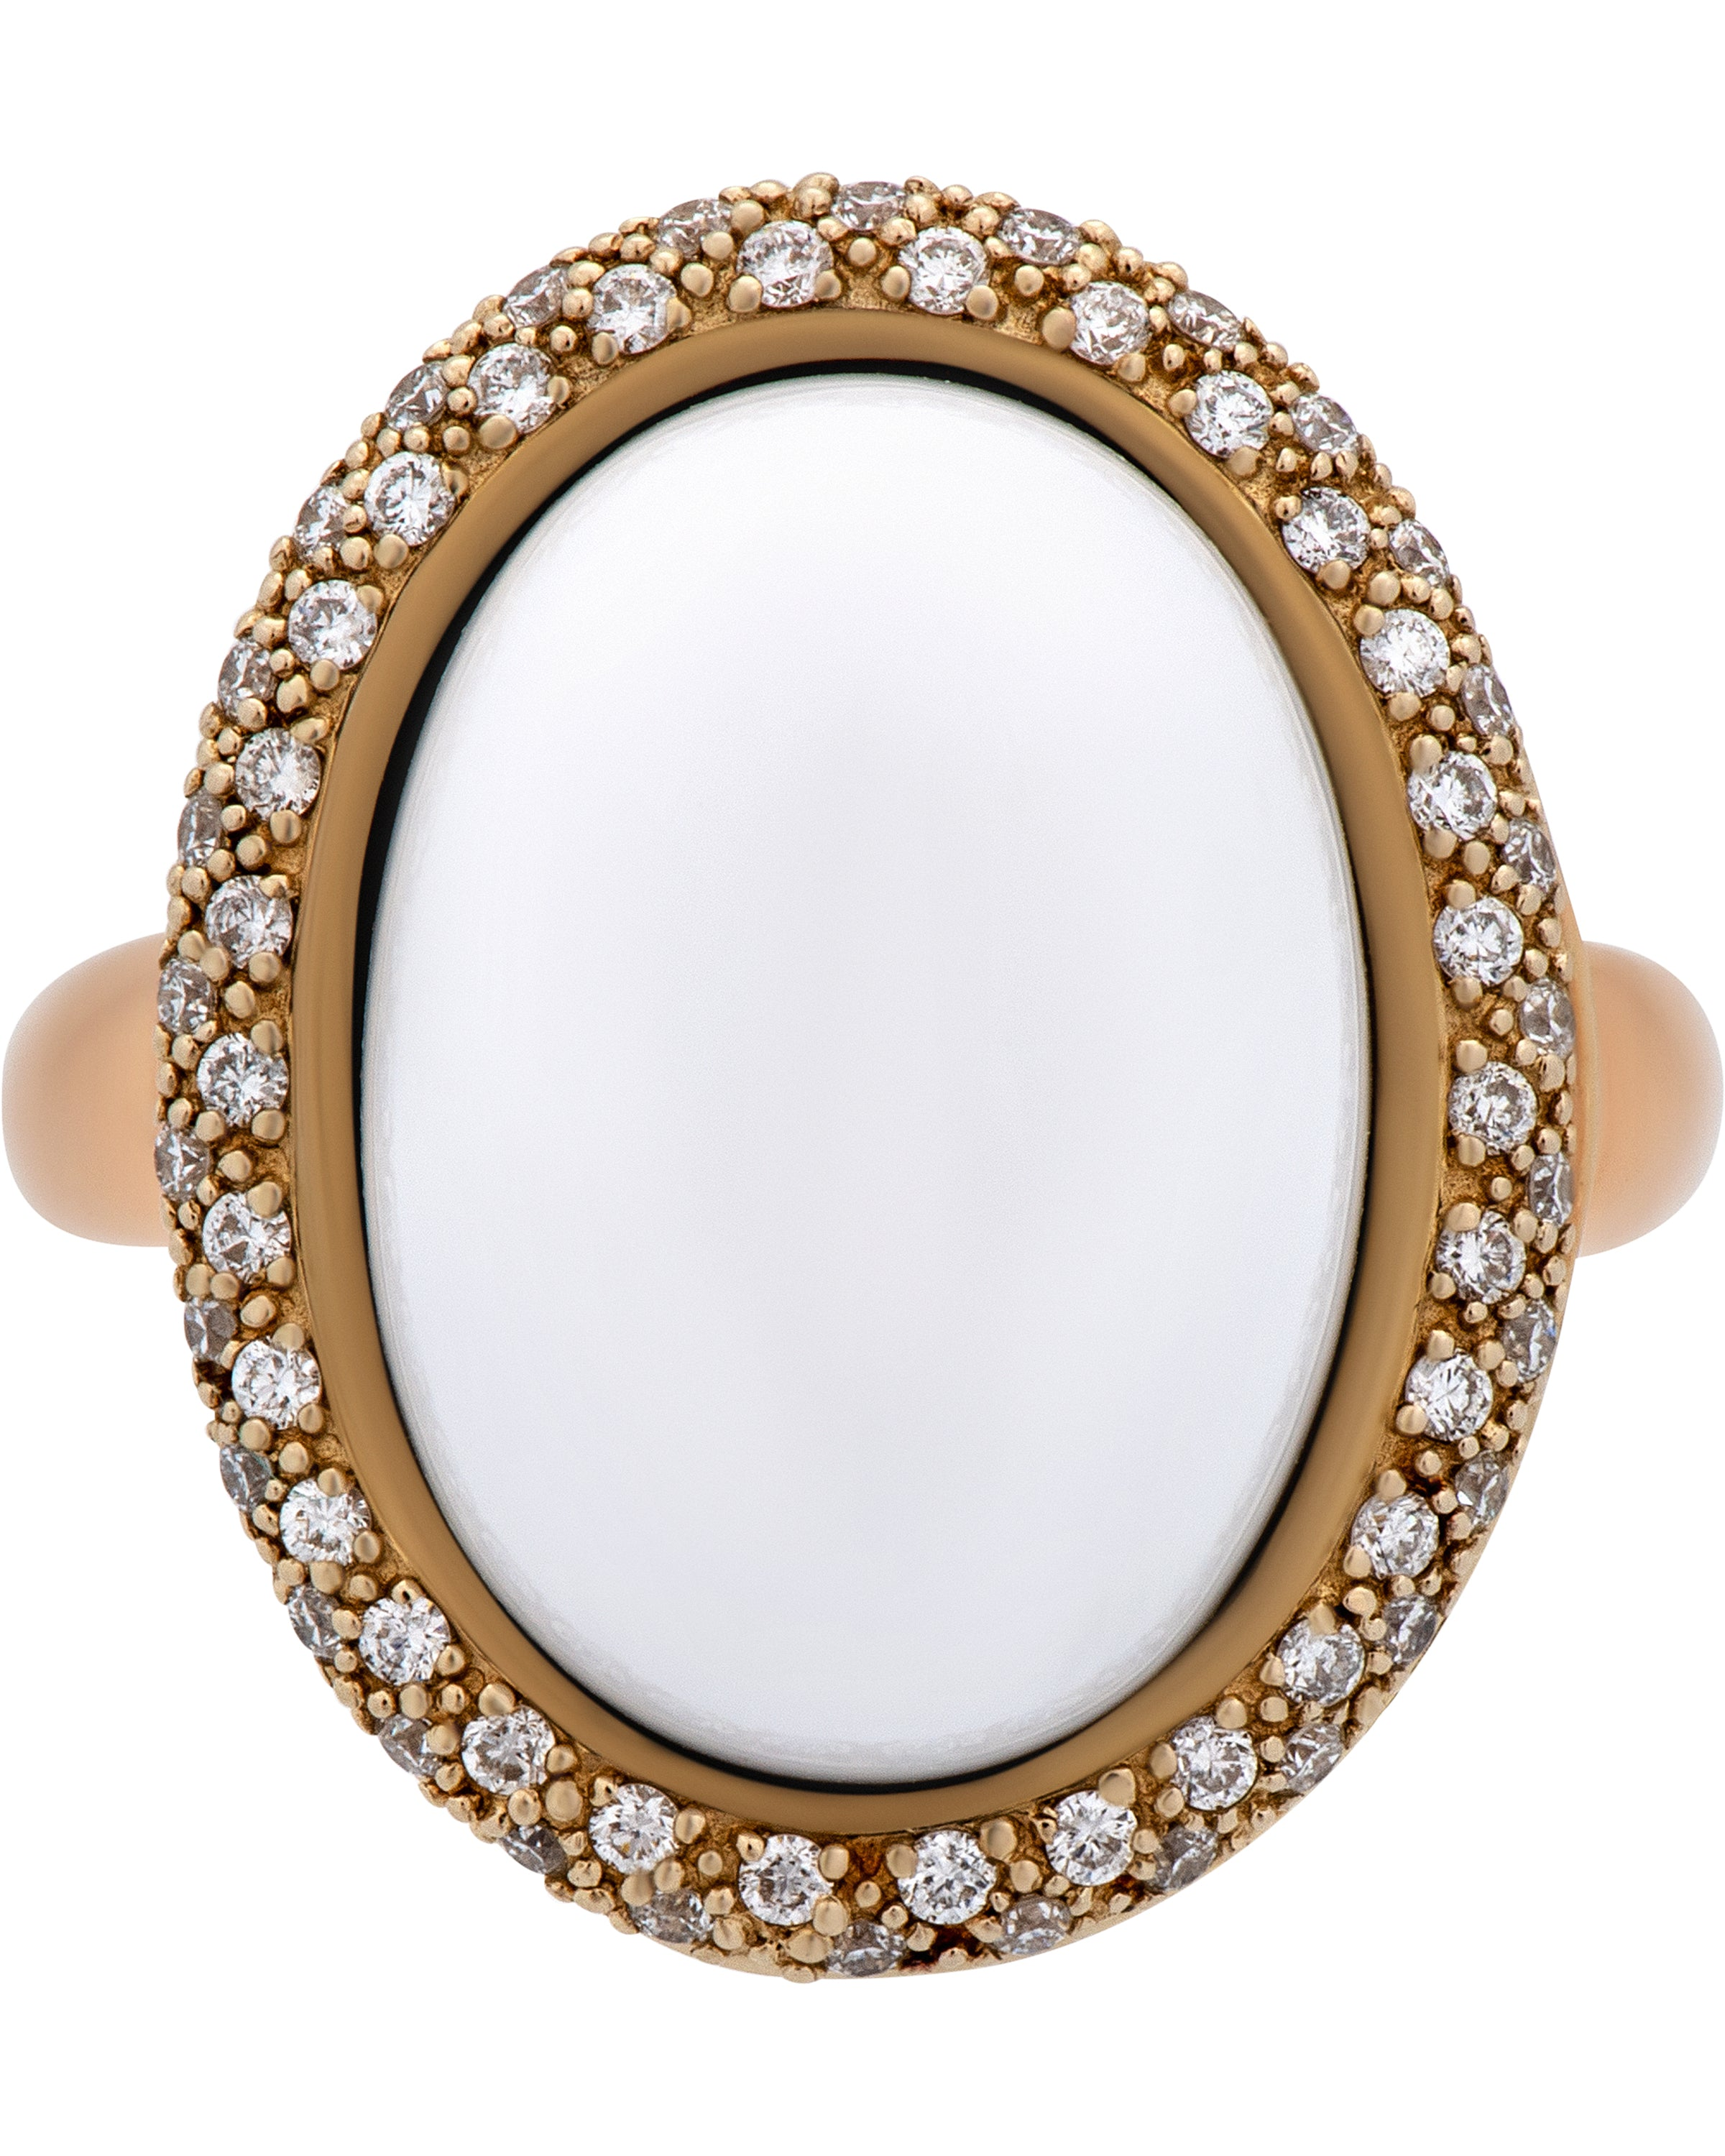 Mimi Milano 18k Gold Diamond And White Agate Ring a222c8a1b